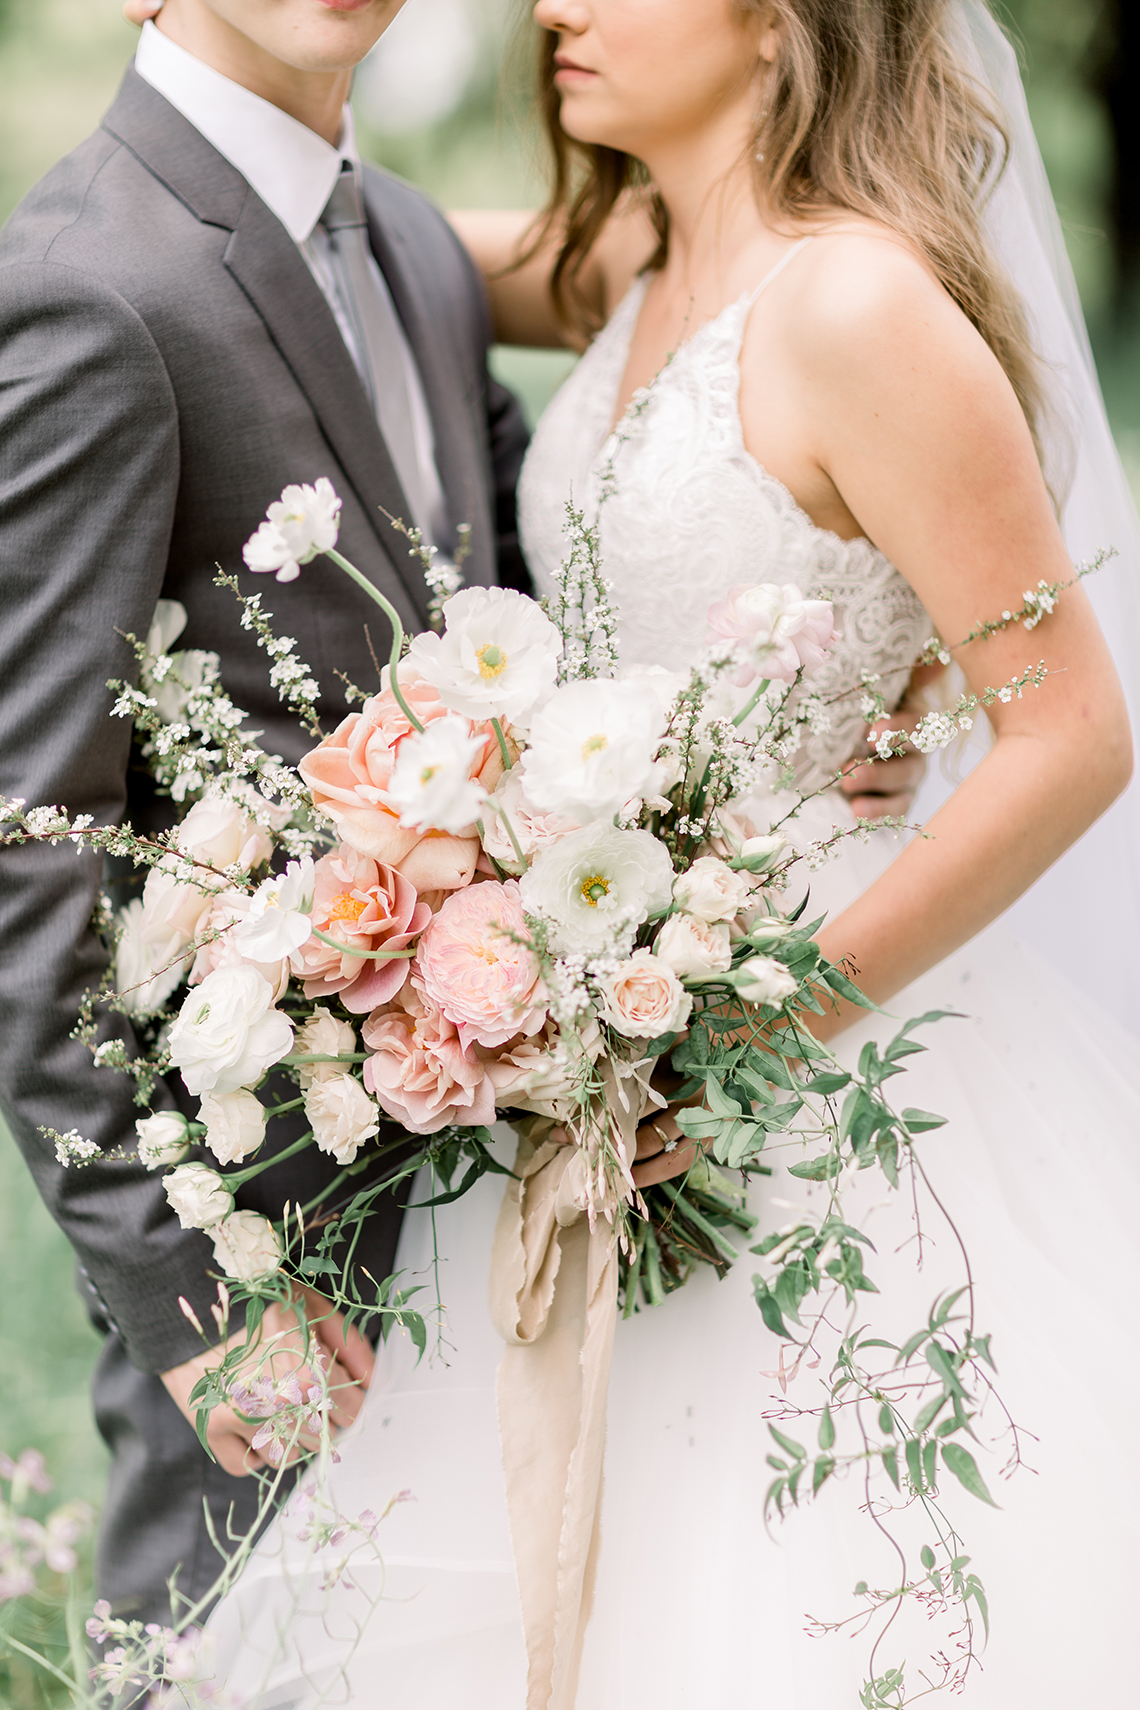 Whimsical Floral-Filled Woodland Wedding – Walnut and Main – Irina Turkova Photography 26